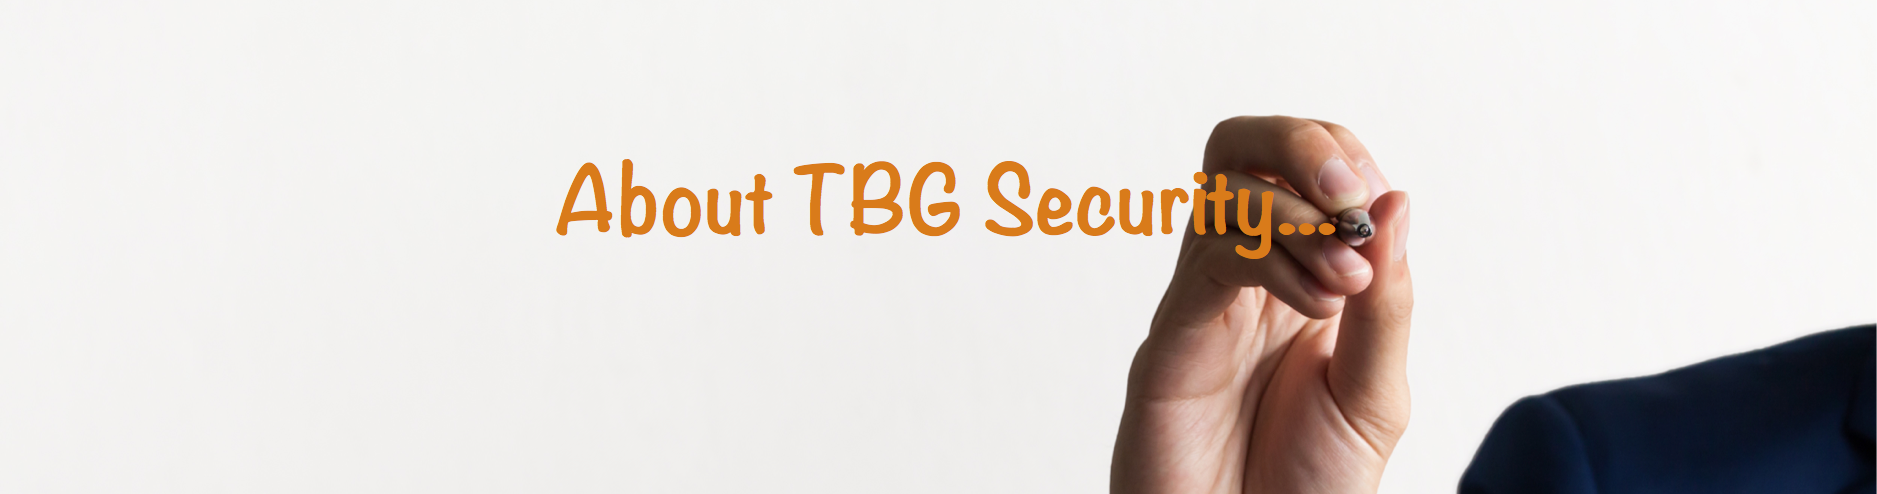 TBG-WEB-ABOUT-BANNER